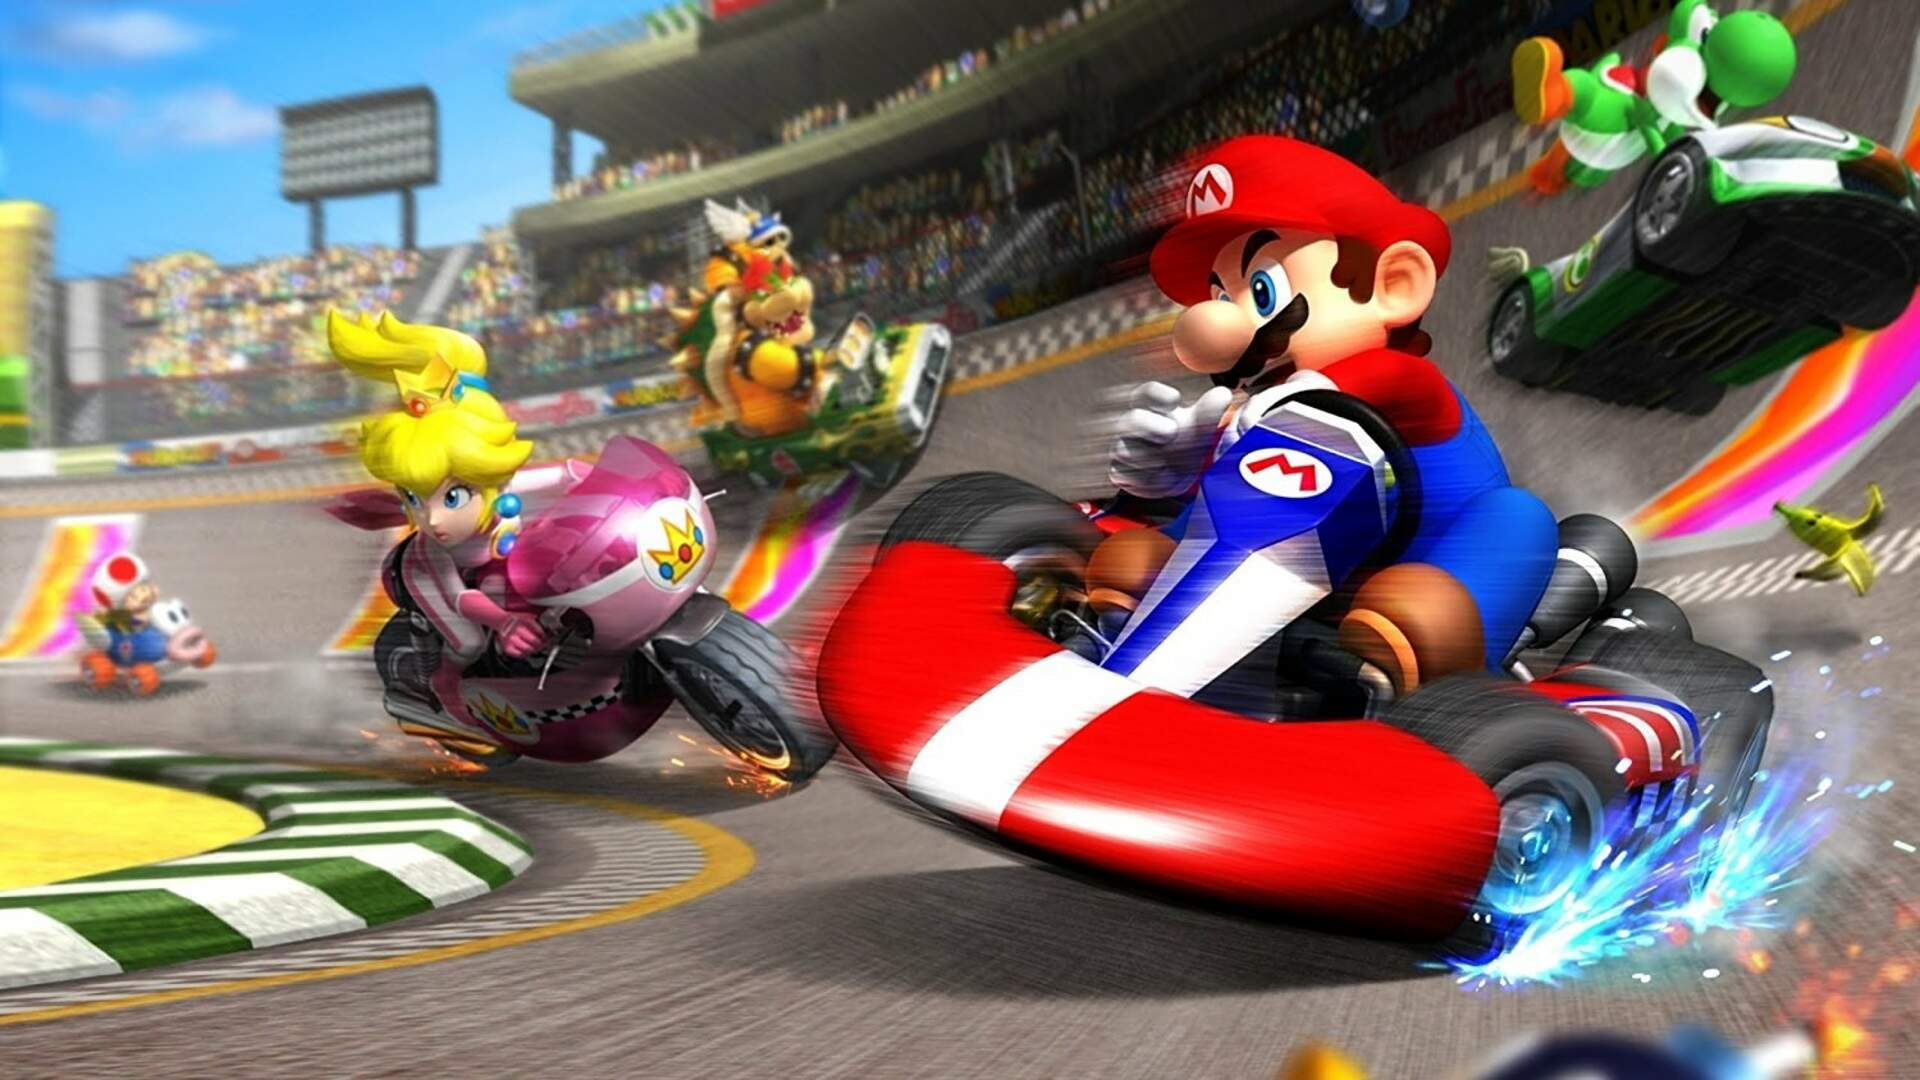 Mario Kart Tour Releases Worldwide Next Month